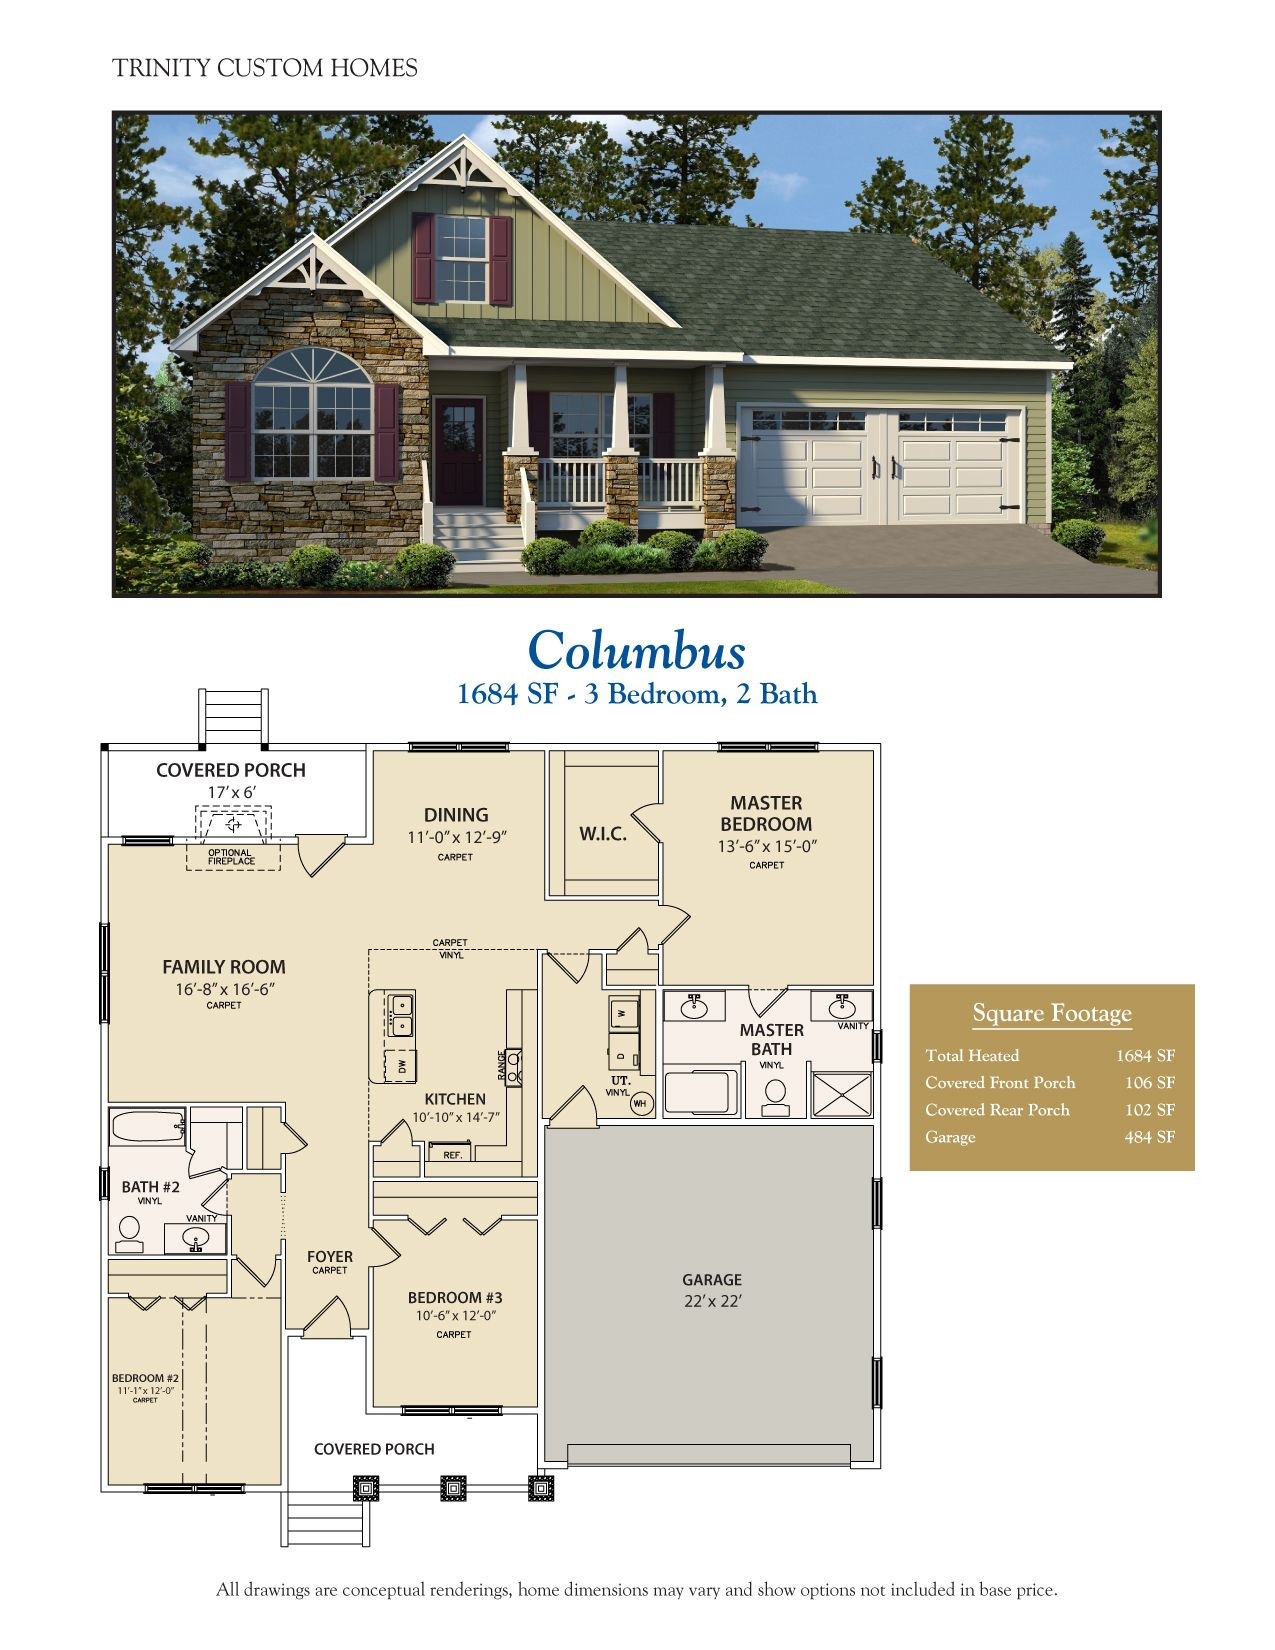 Take A Look At All Of Trinity Custom Homes Georgia Floor Plans Here We Have A Lot To Offer So Contact Us Custom Home Plans Building A House Dream House Plans